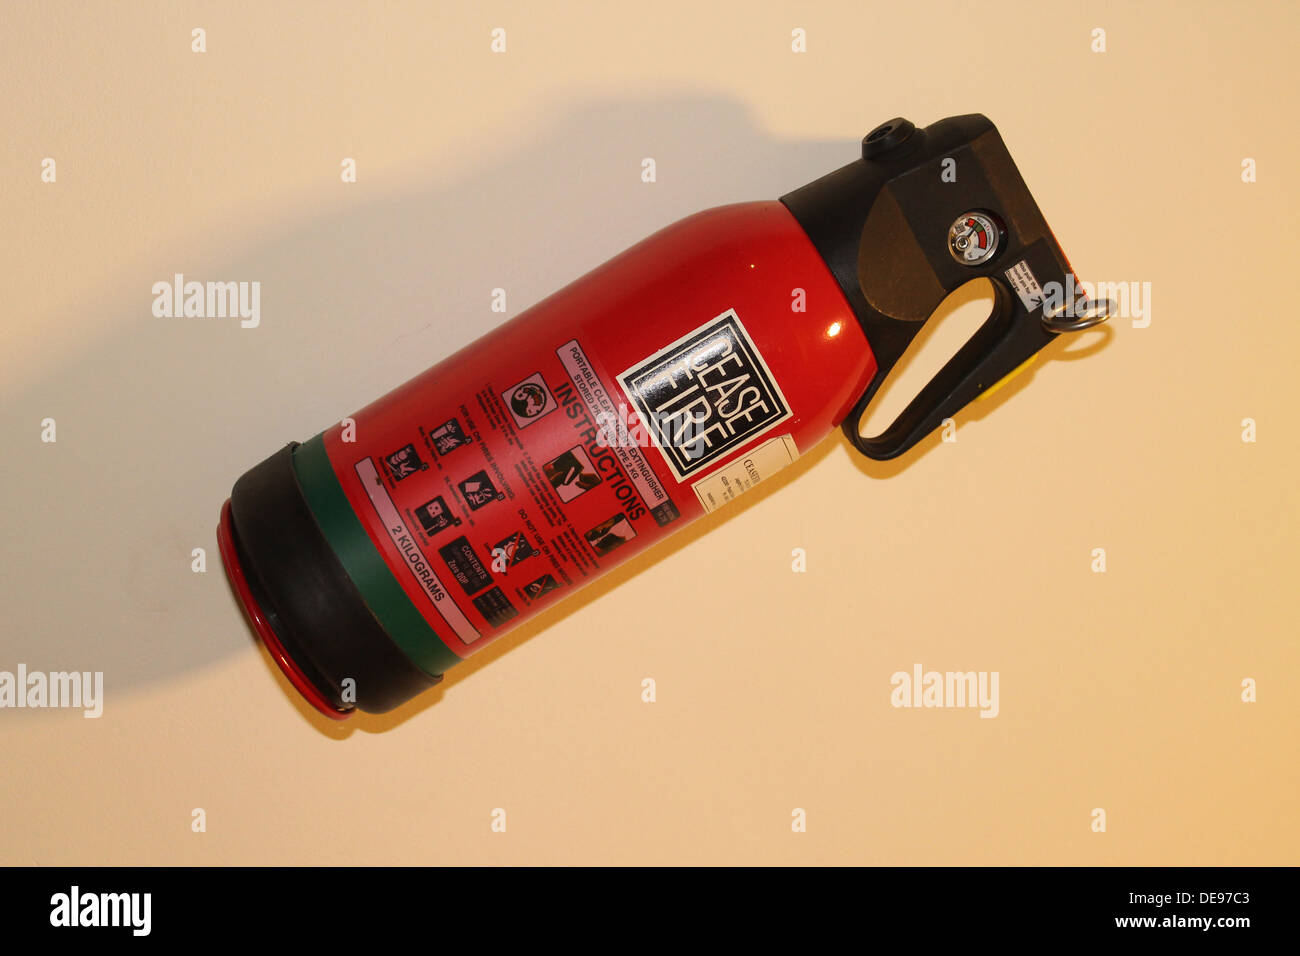 A fire extinguisher mounted on wall - Stock Image